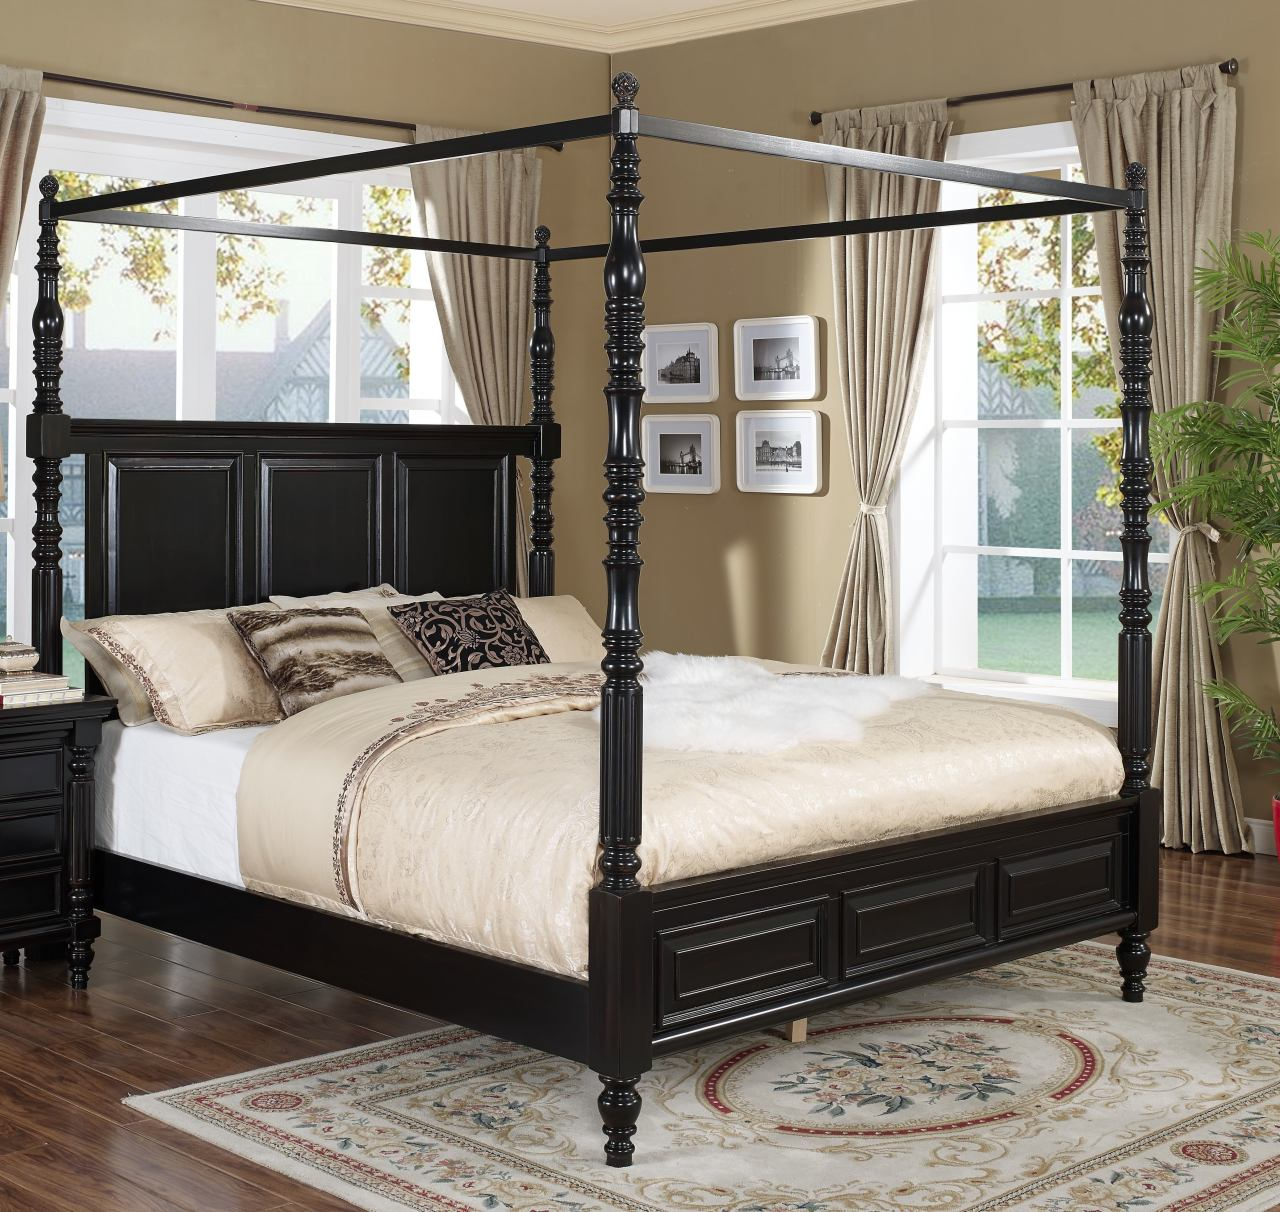 New Classic Martinique King Canopy Bed with Drapes in Rubbed Black 00-222-111EK